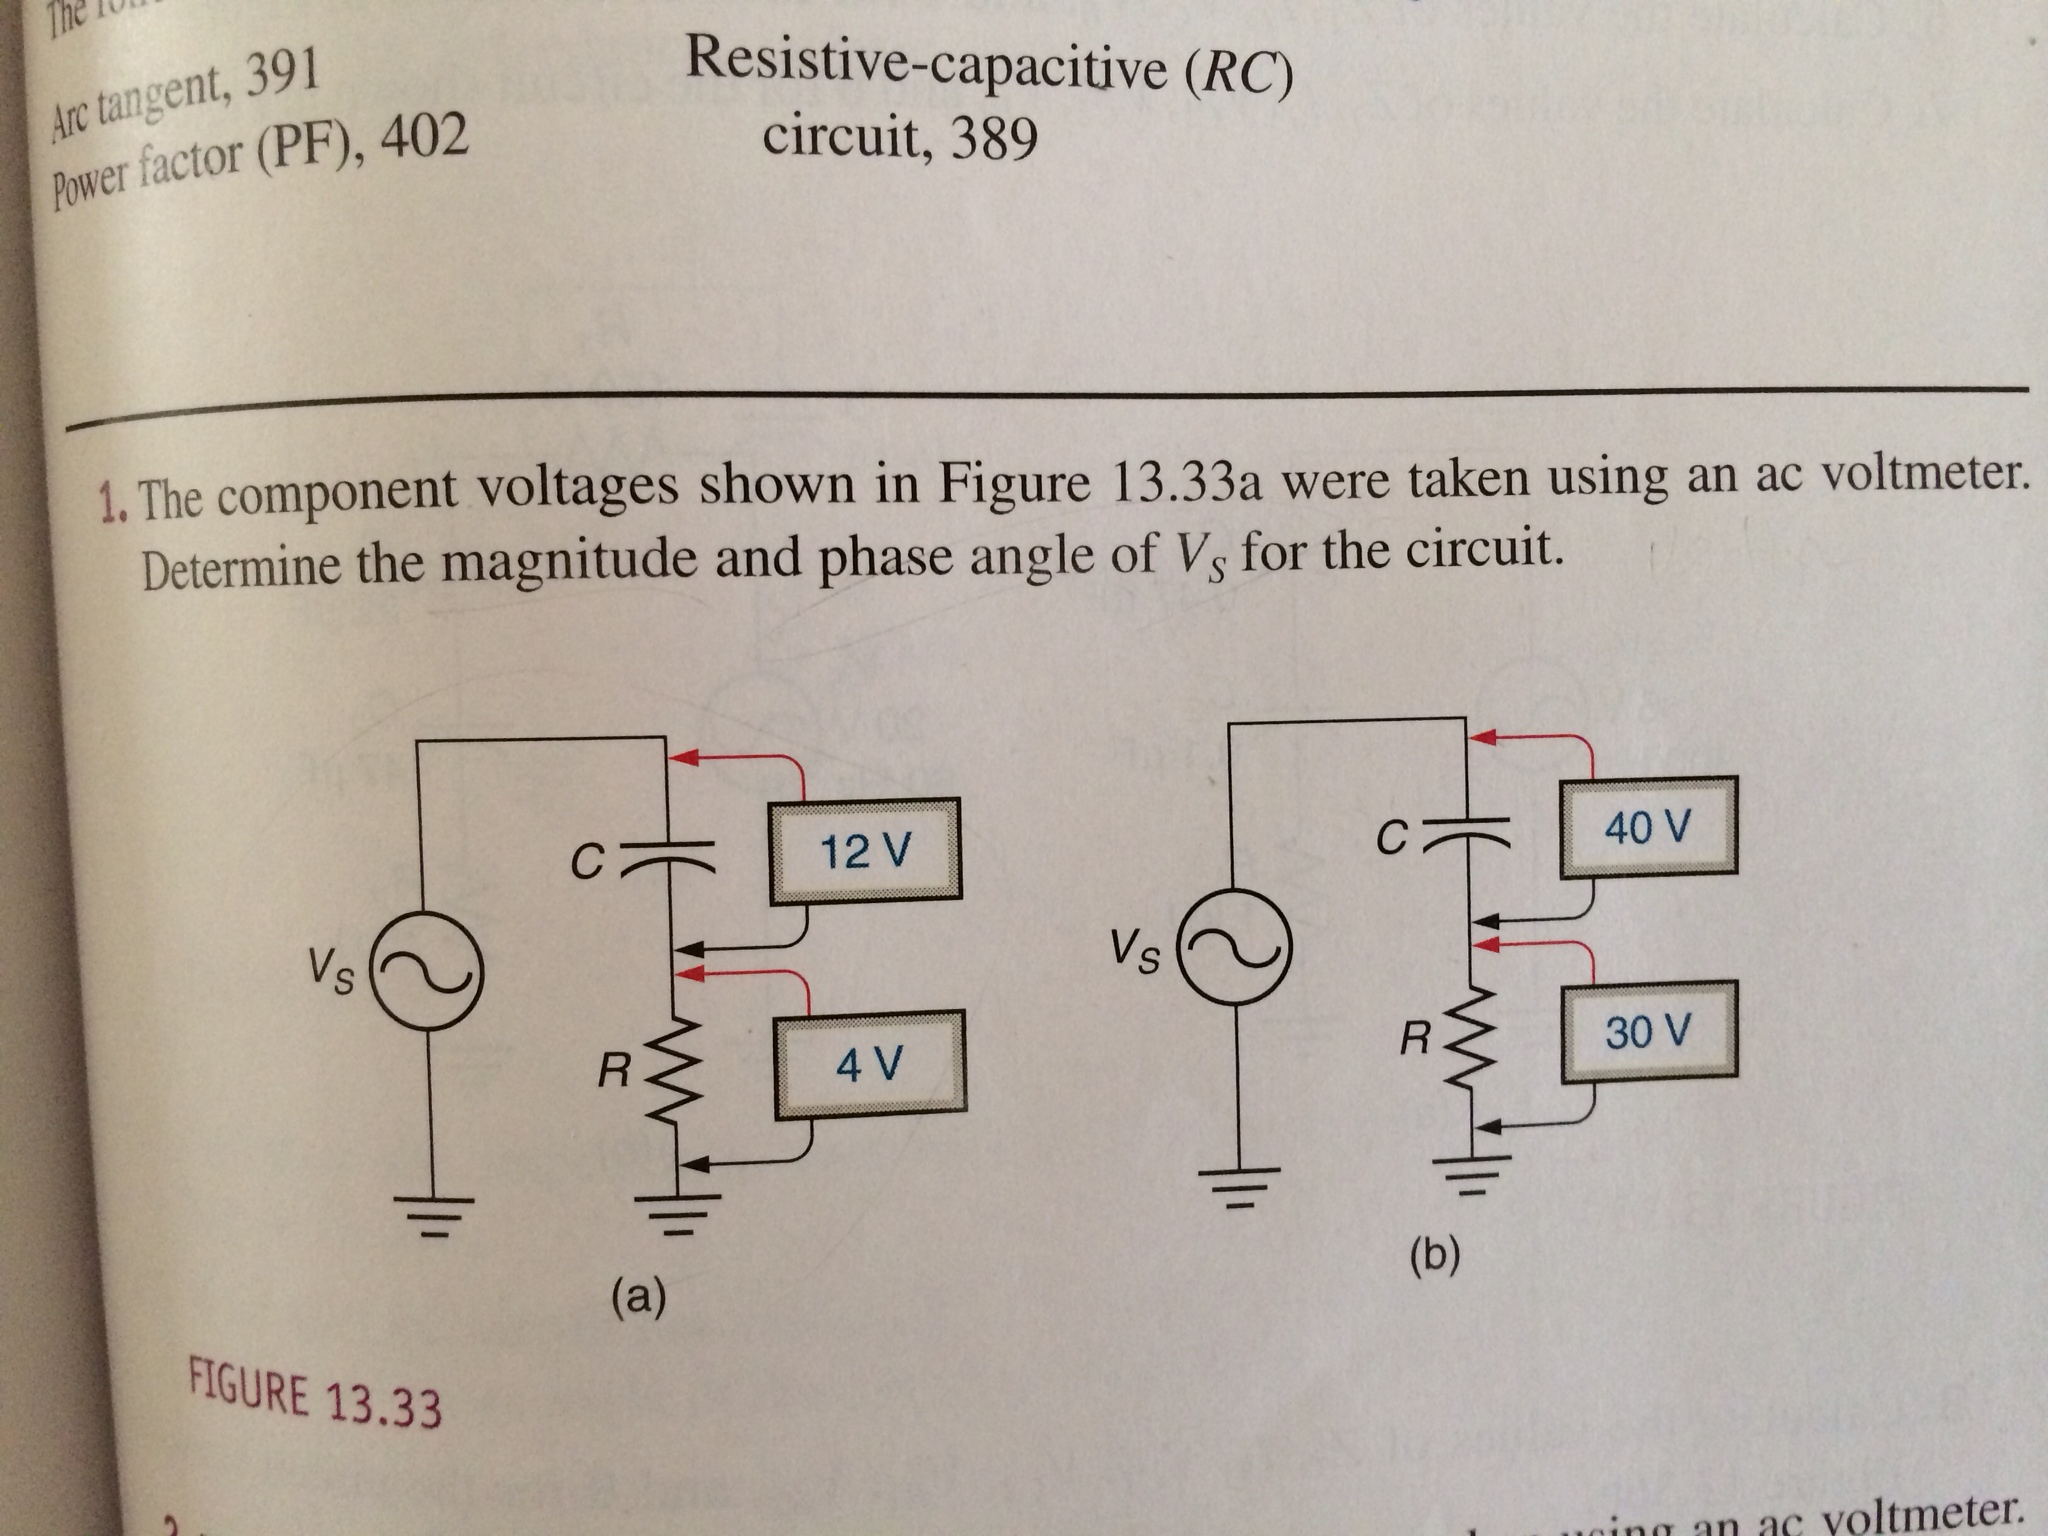 The component voltages shown in Figure 13.33a were